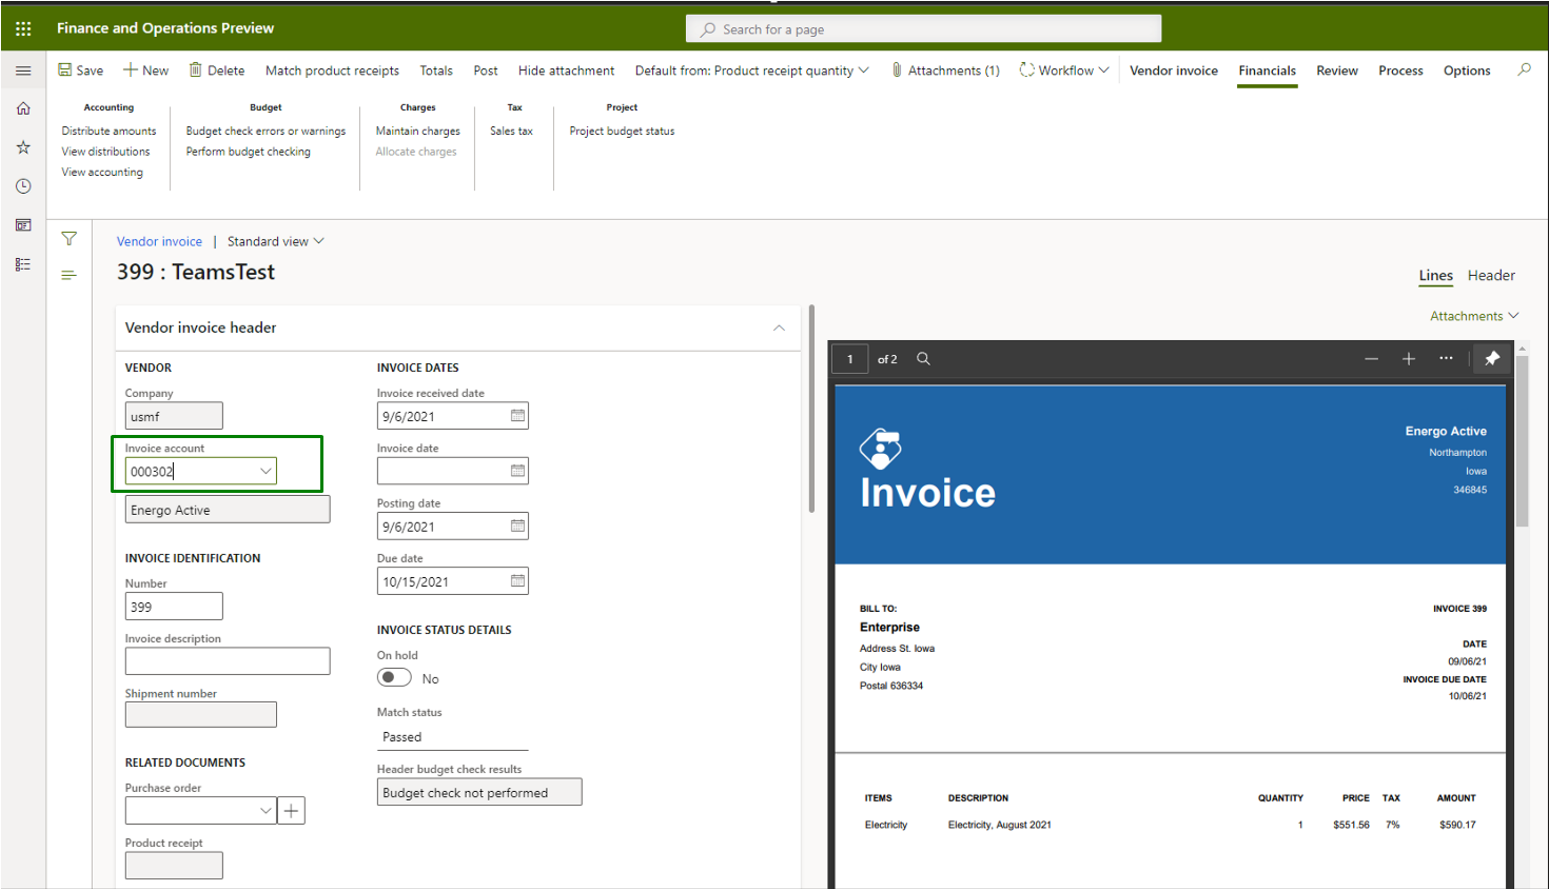 Vendor invoice automation_Pic. 9 – Vendor invoice side by side view (making changes)